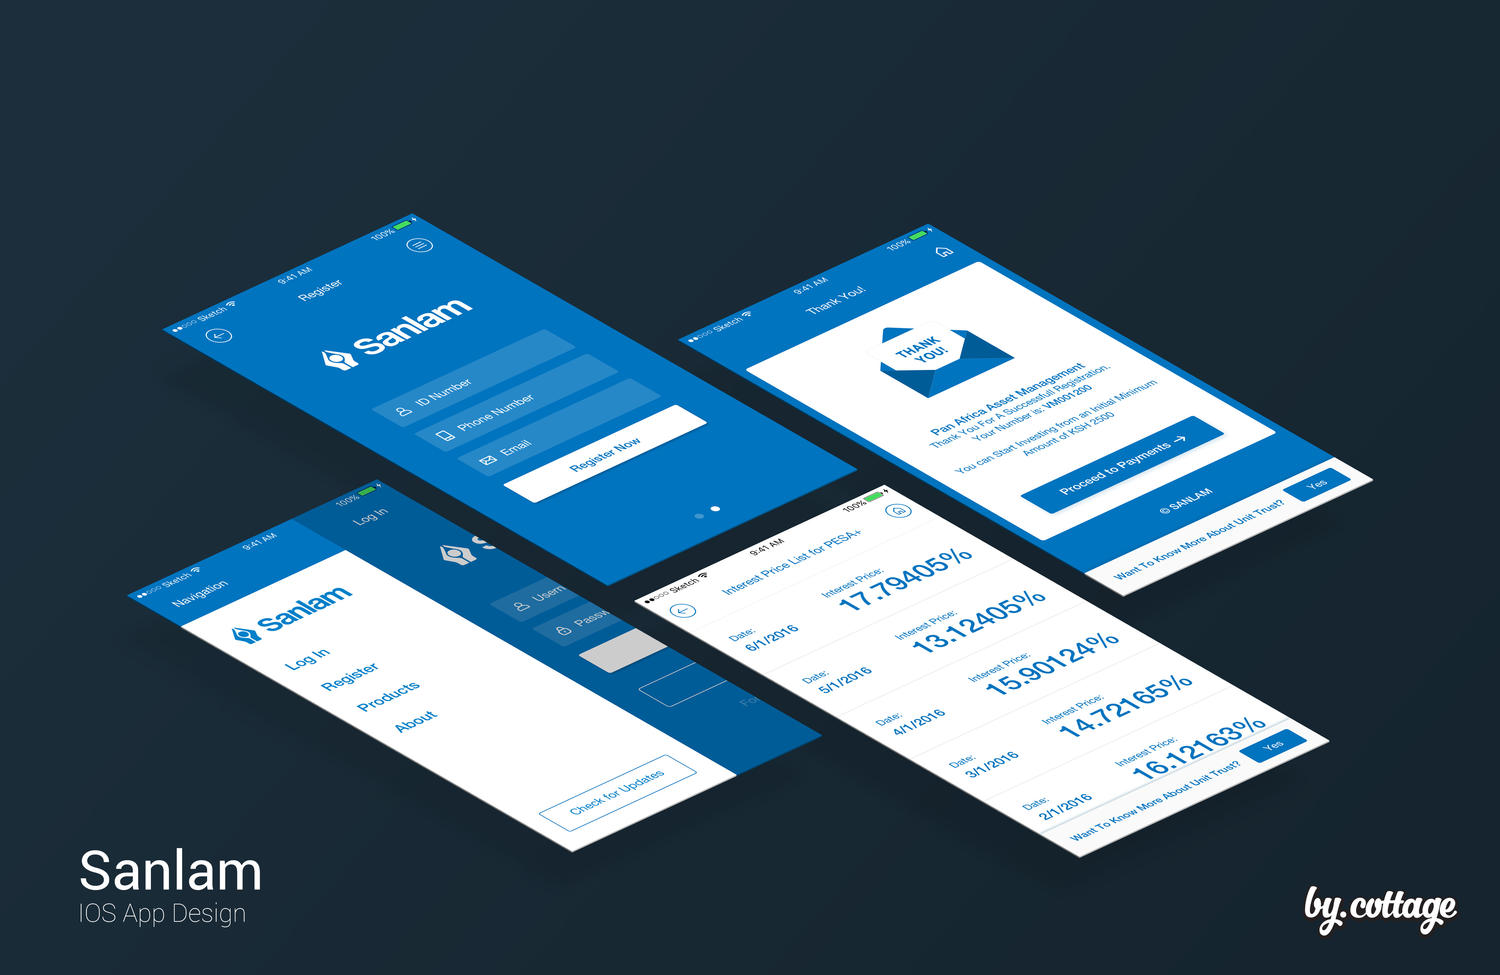 UI/UX iOS Professional App Design by laurentiu_cotet on Envato Studio